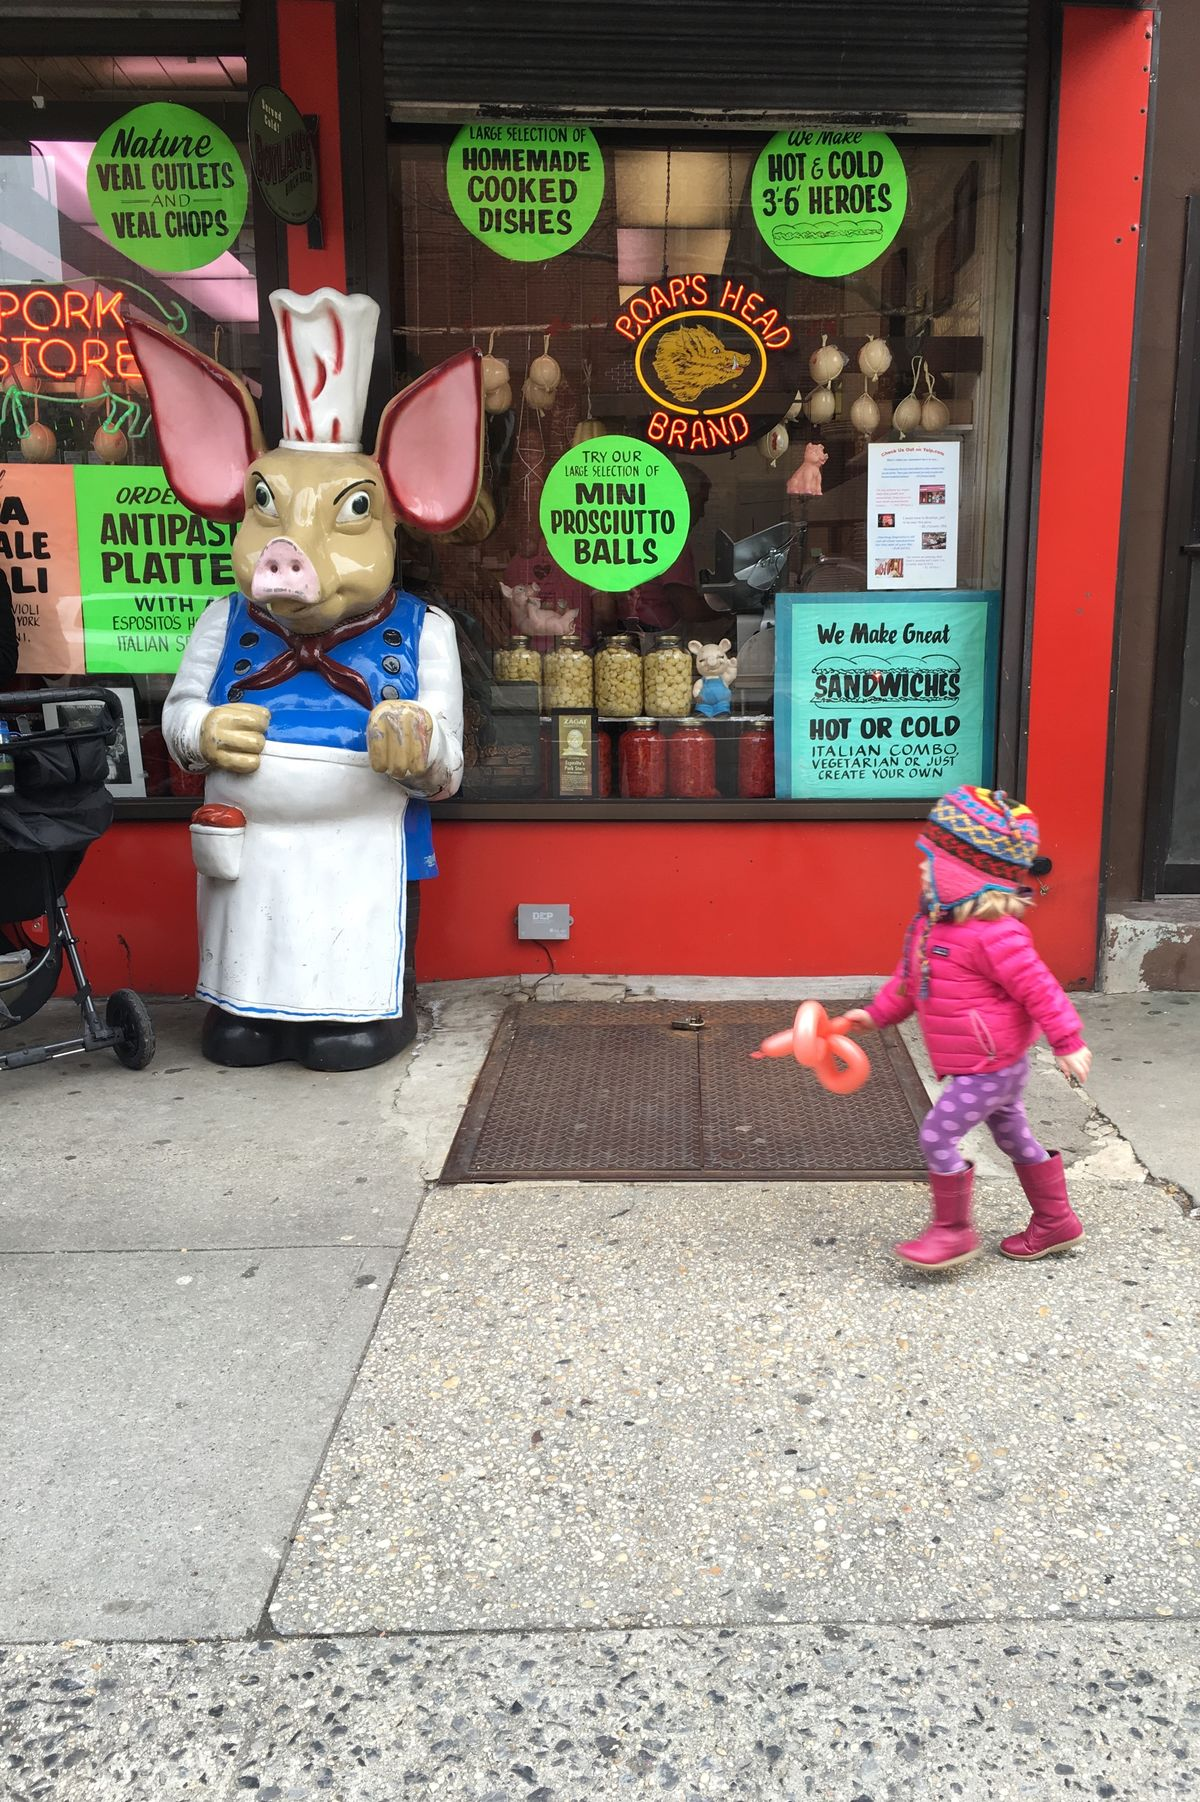 Brooklyn Butcher Child Child Walking For Sale Storefront View From Street Writing In Window